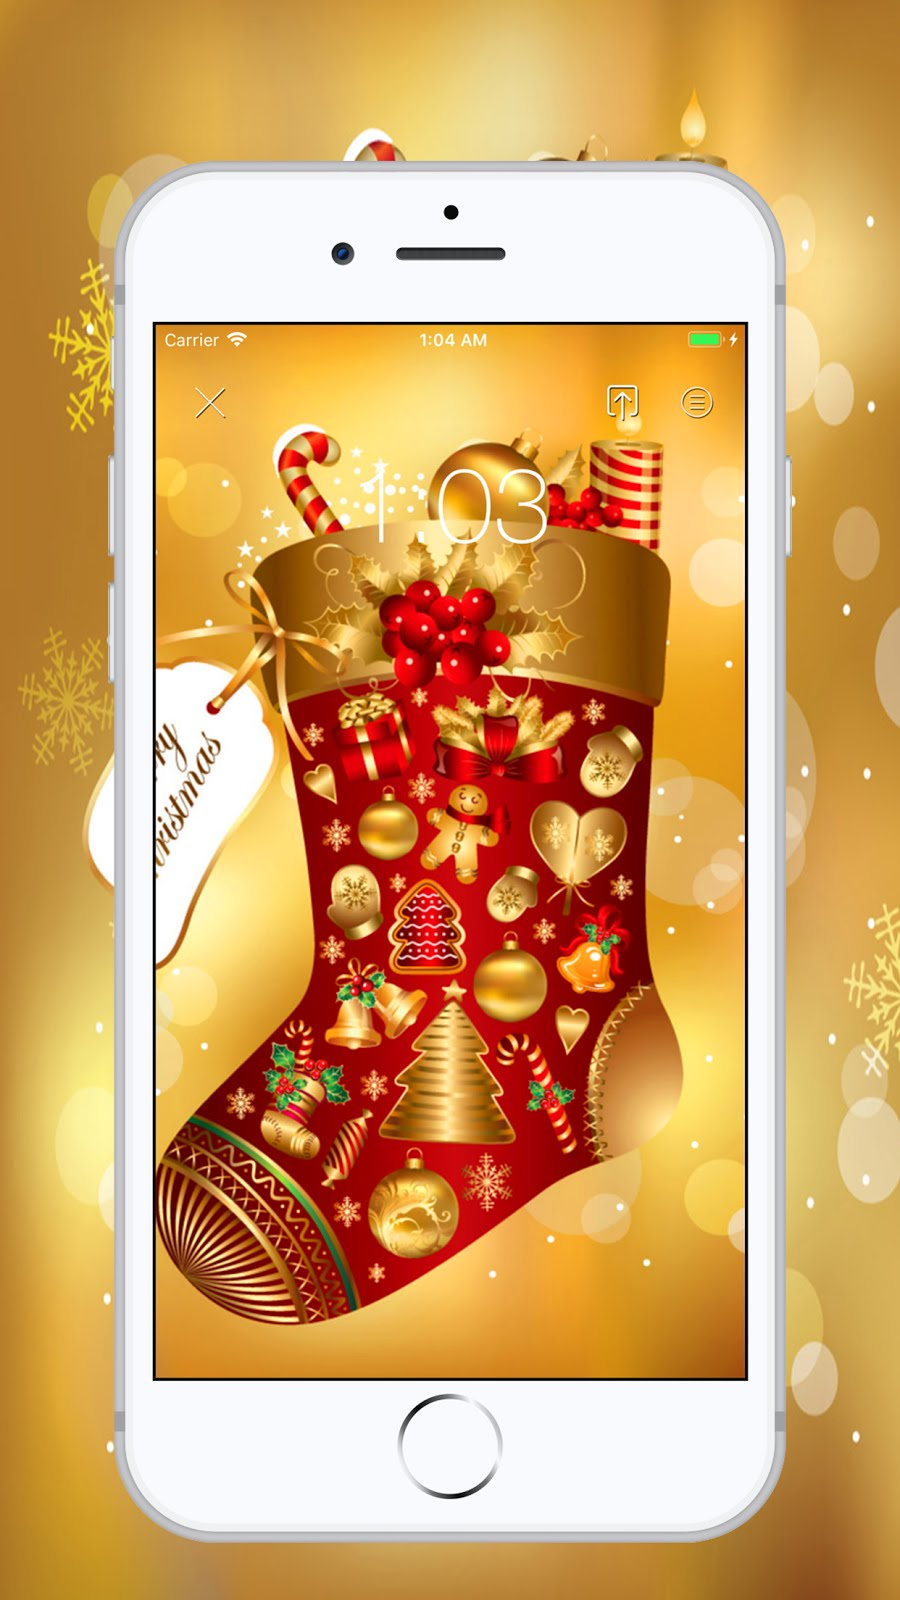 merry christmas wallpapers backgrounds app for iphone ipad at happy new year 2018